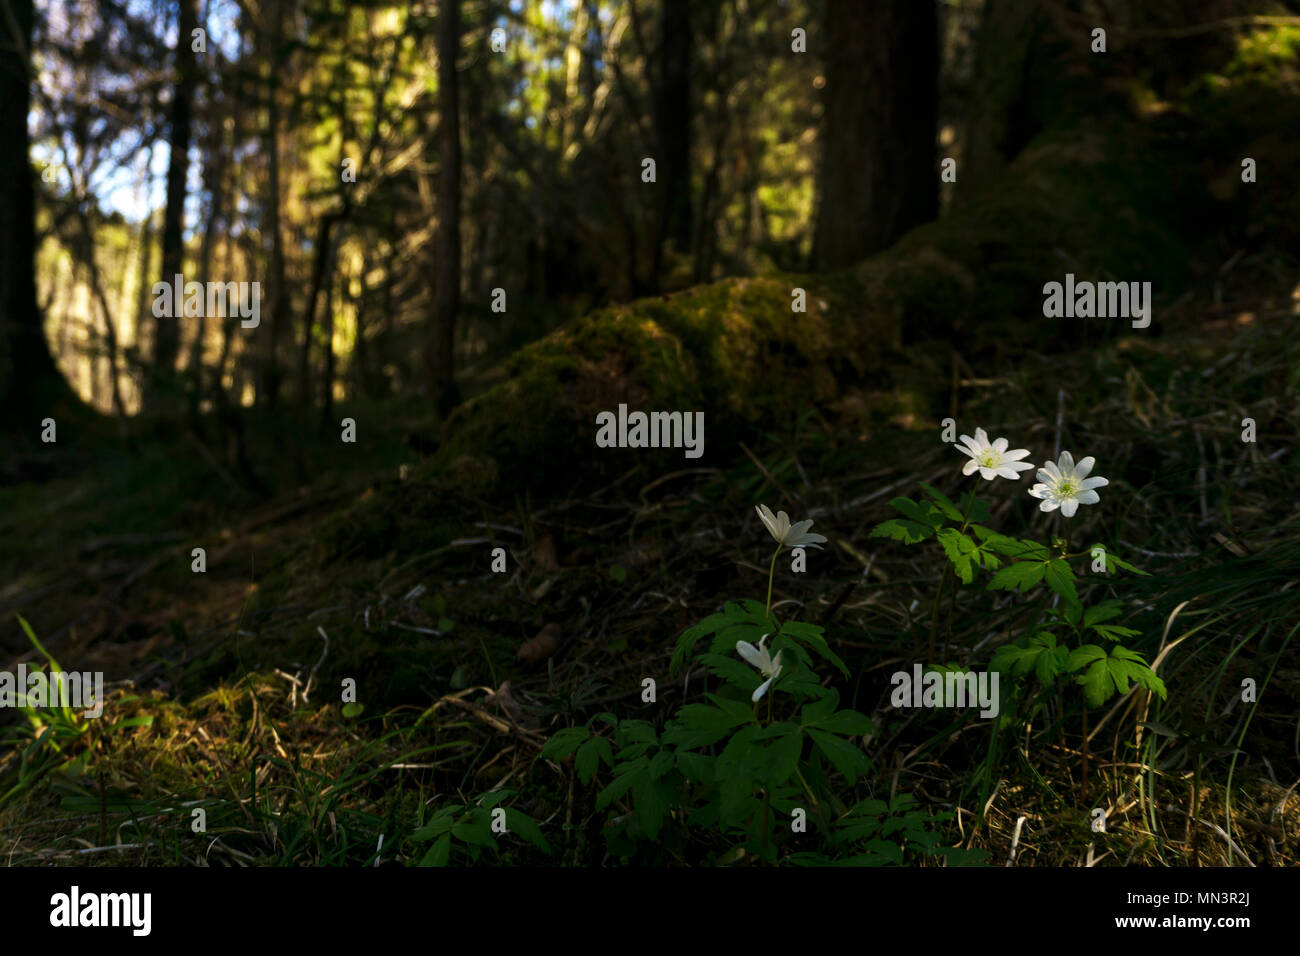 white flowers snowdrops in a dark forest thicket on a sunny spring day, taken from the ground level Stock Photo